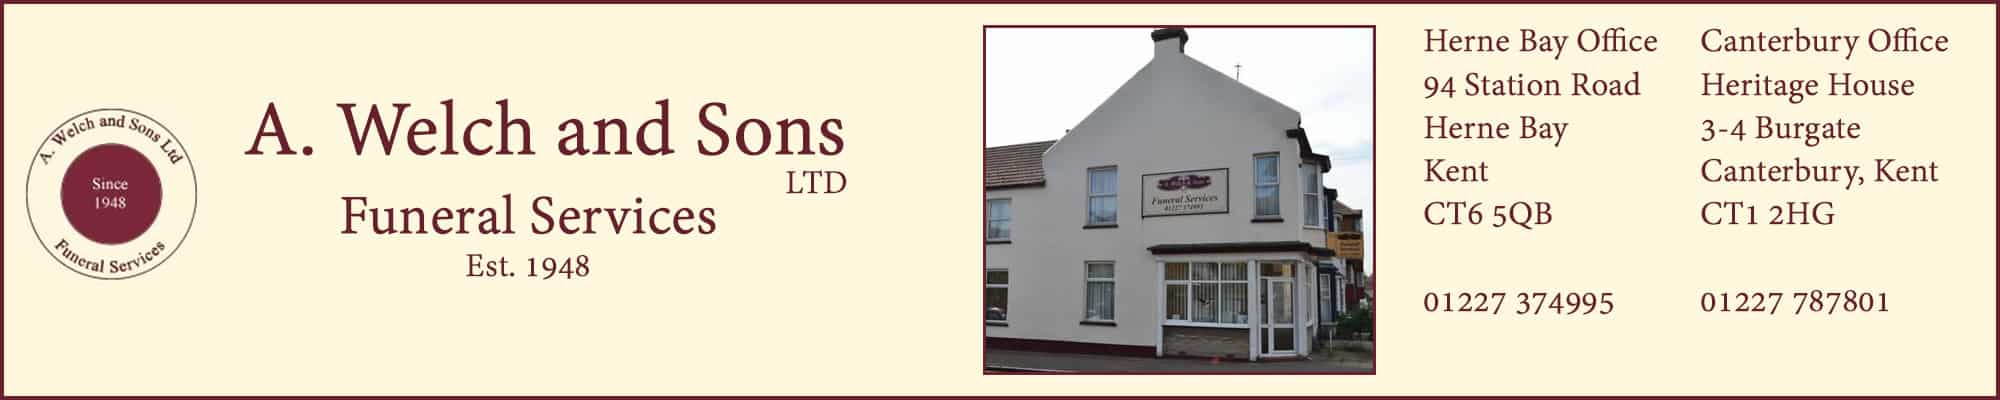 A Welch and Sons Funeral Services Herne Bay | Canterbury